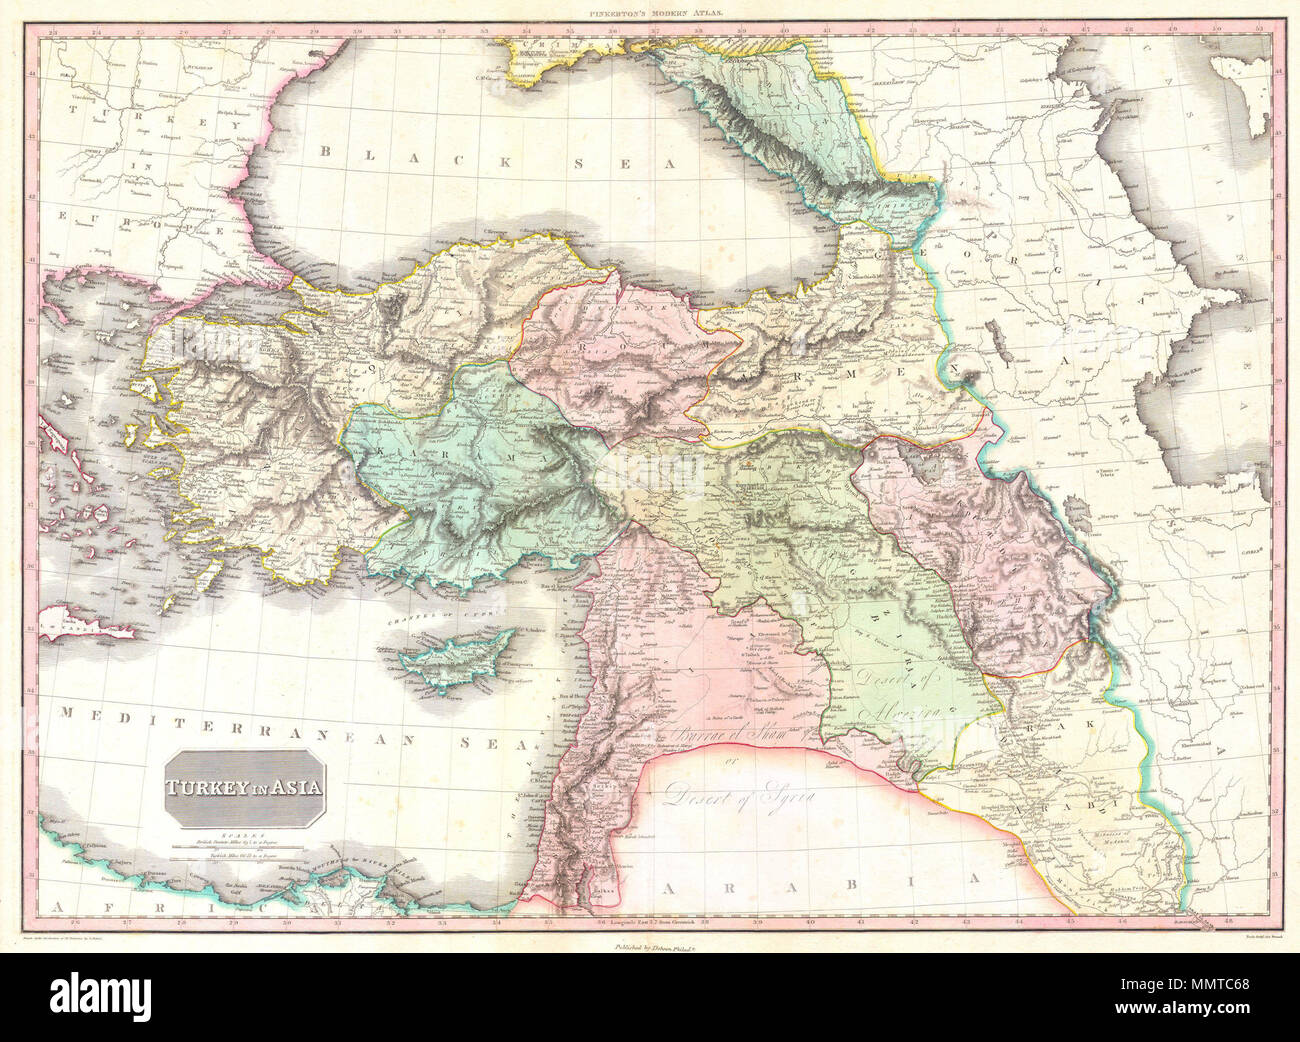 English This Is John Pinkerton S Stunning 1818 Map Of Turkey In Asia Covers The Holdings Of The Early 19th Century Ottoman Empire In Asia Inclusive Of Modern Day Turkey Iraq Cyprus